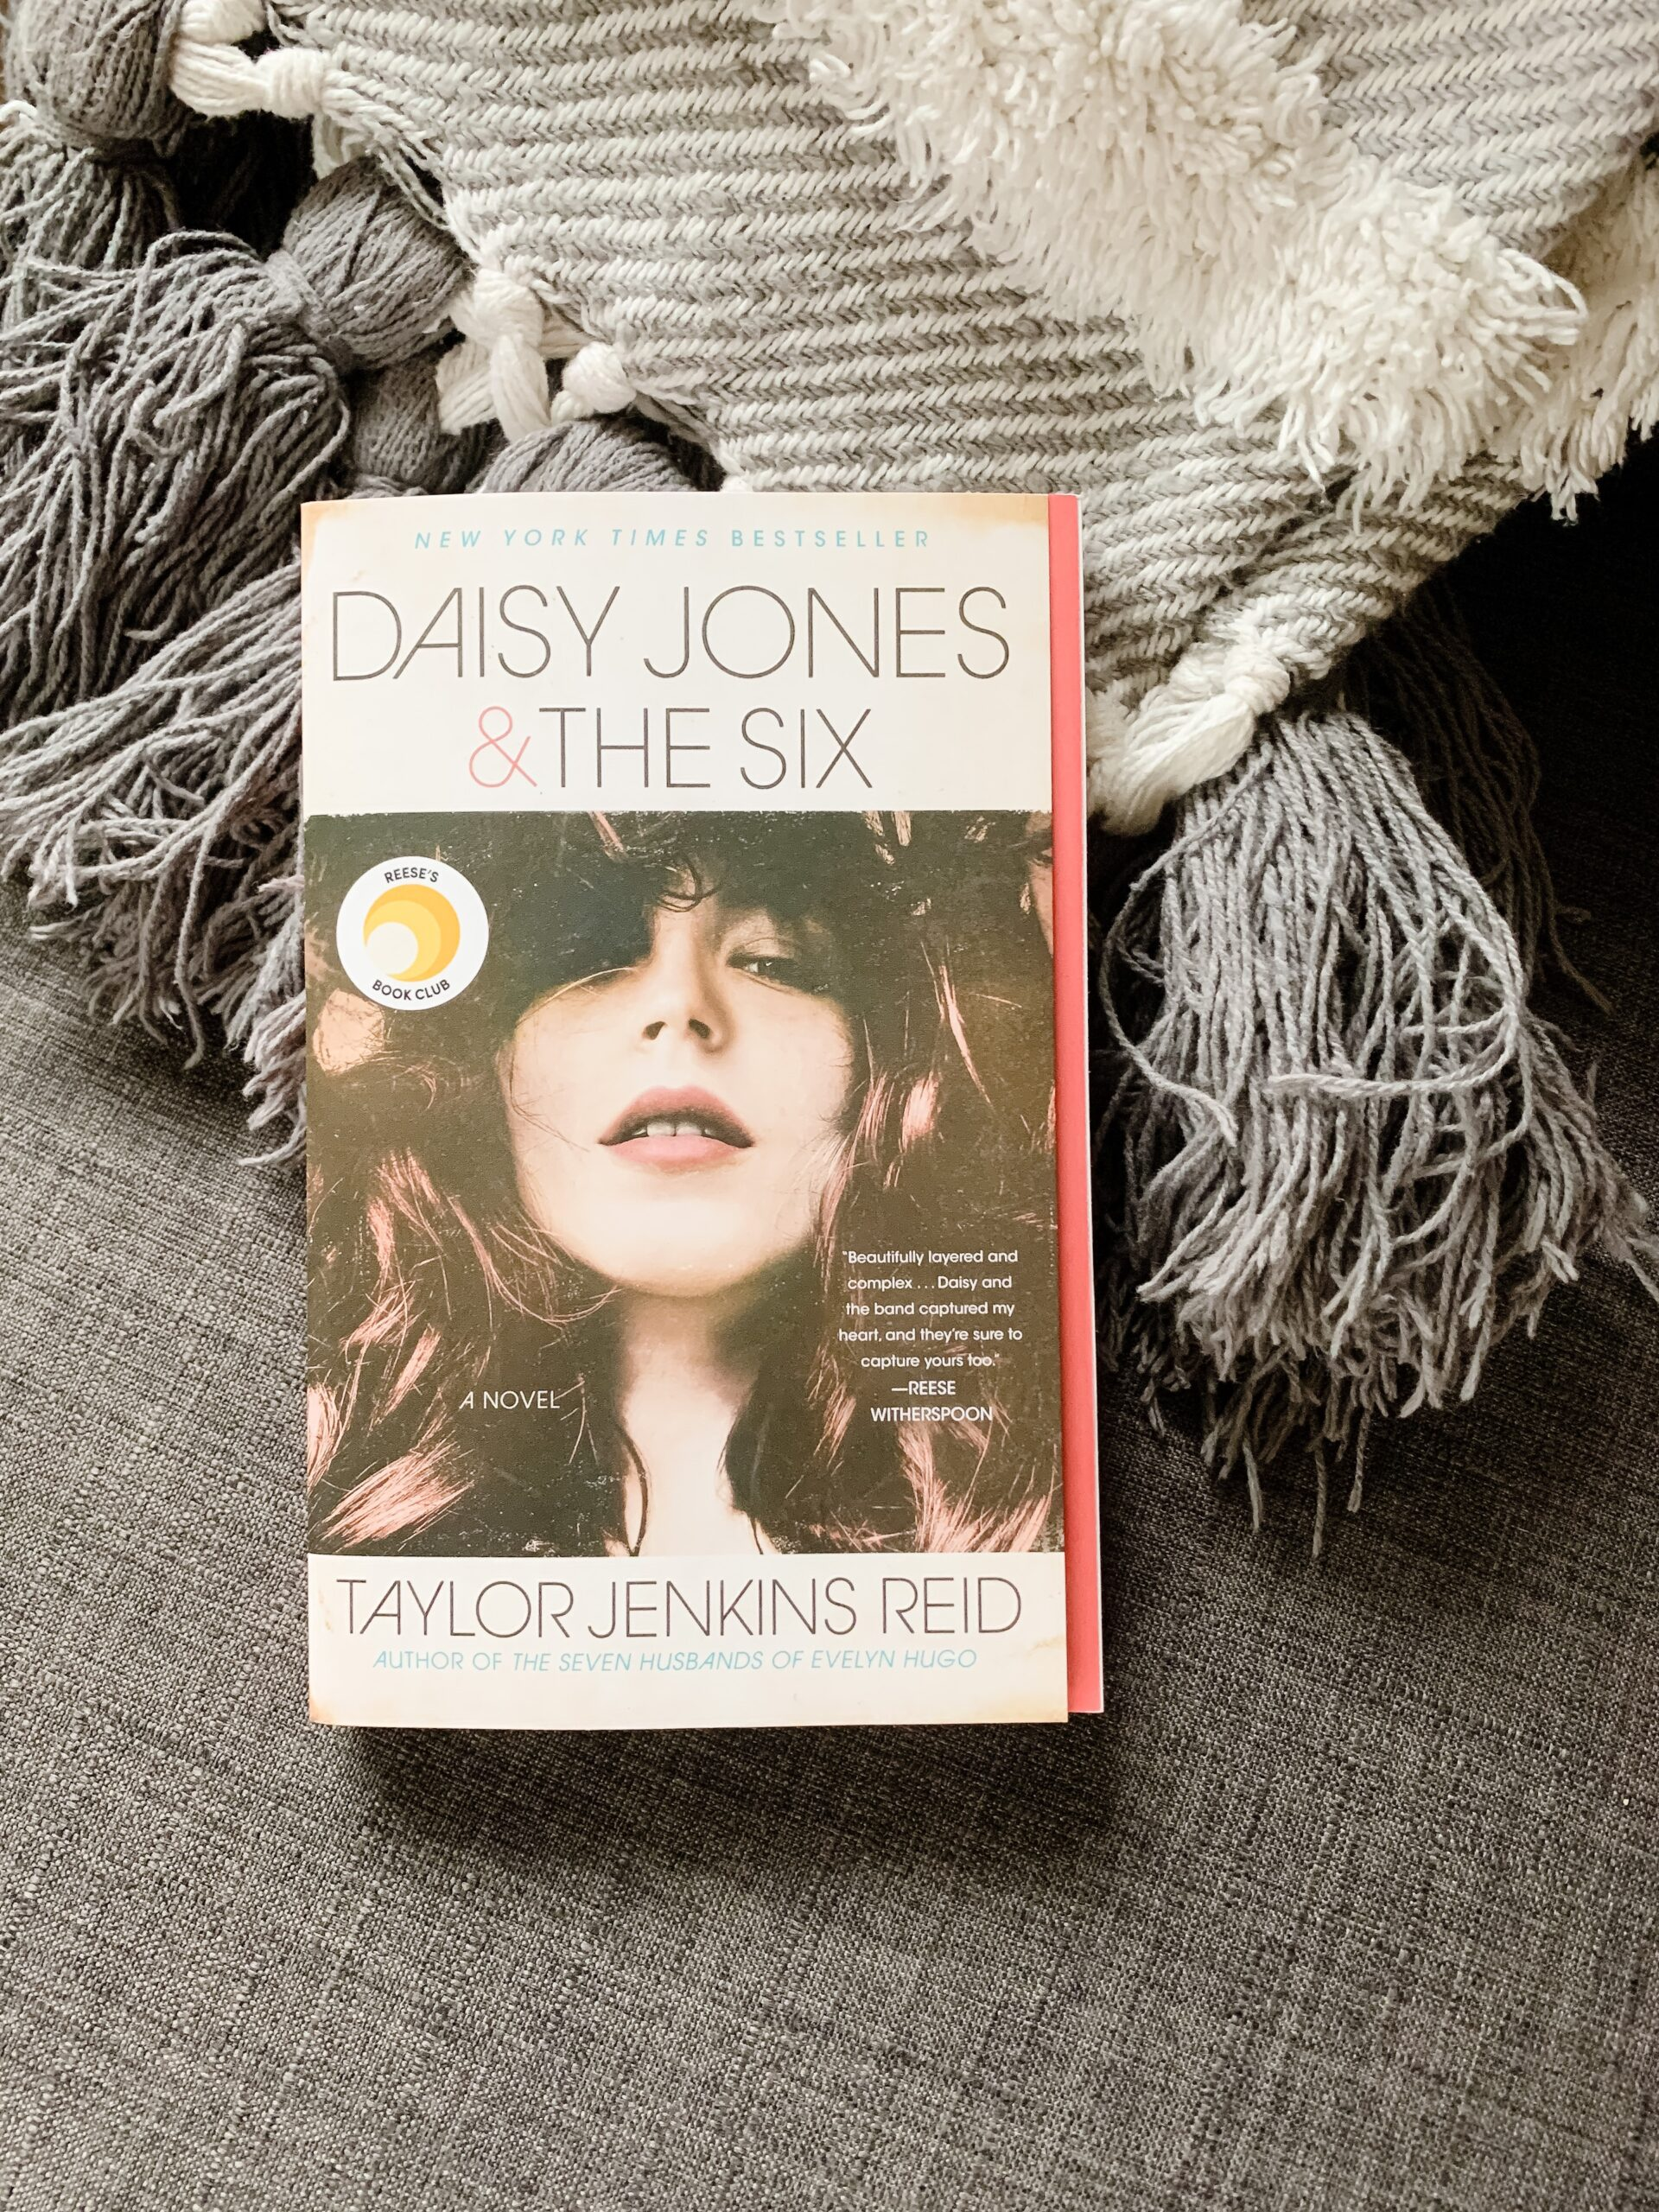 Image of the novel Daisy Jones and the Six, by Taylor Jenkins Reid. Book with image of rock star sits on a chair